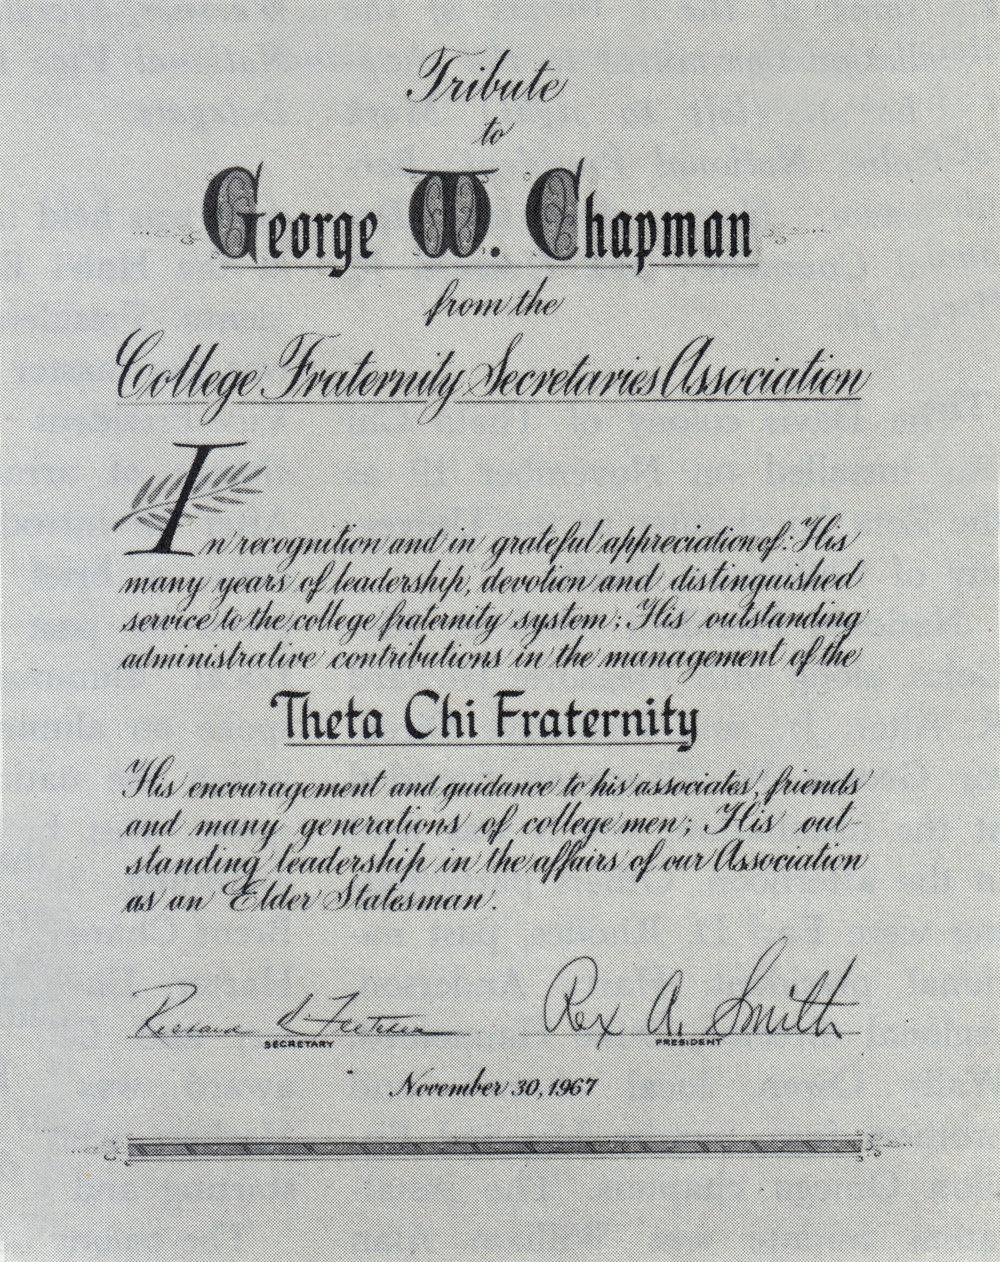 Tribute given to George W. Chapman from the College Fraternity Secretaries Association - Nov. 30, 1967